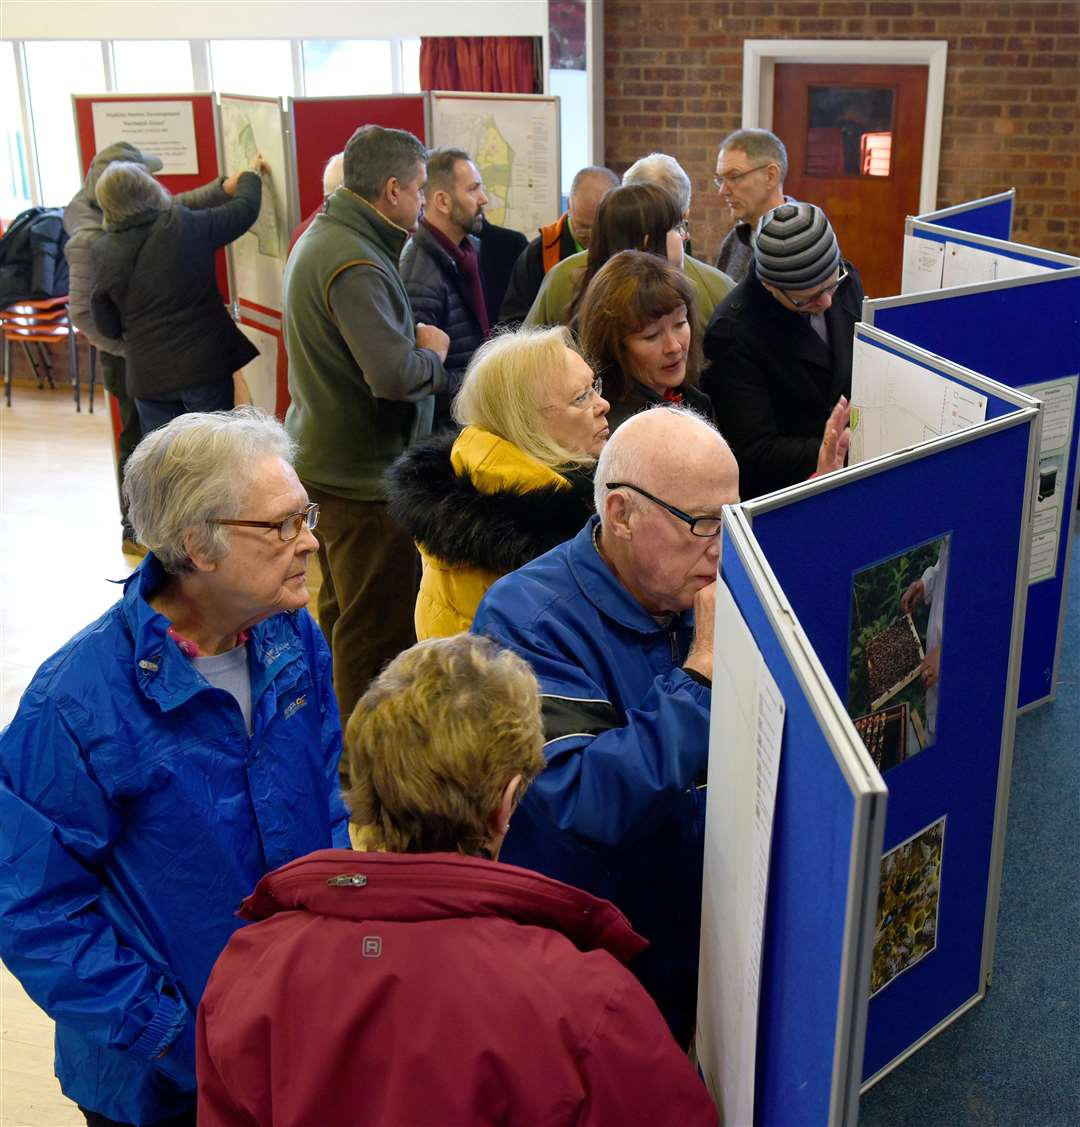 West Winch and North Runcton Parish Councils held a Public Meeting on Saturday 2nd February 2019 at West Winch Village Hall.